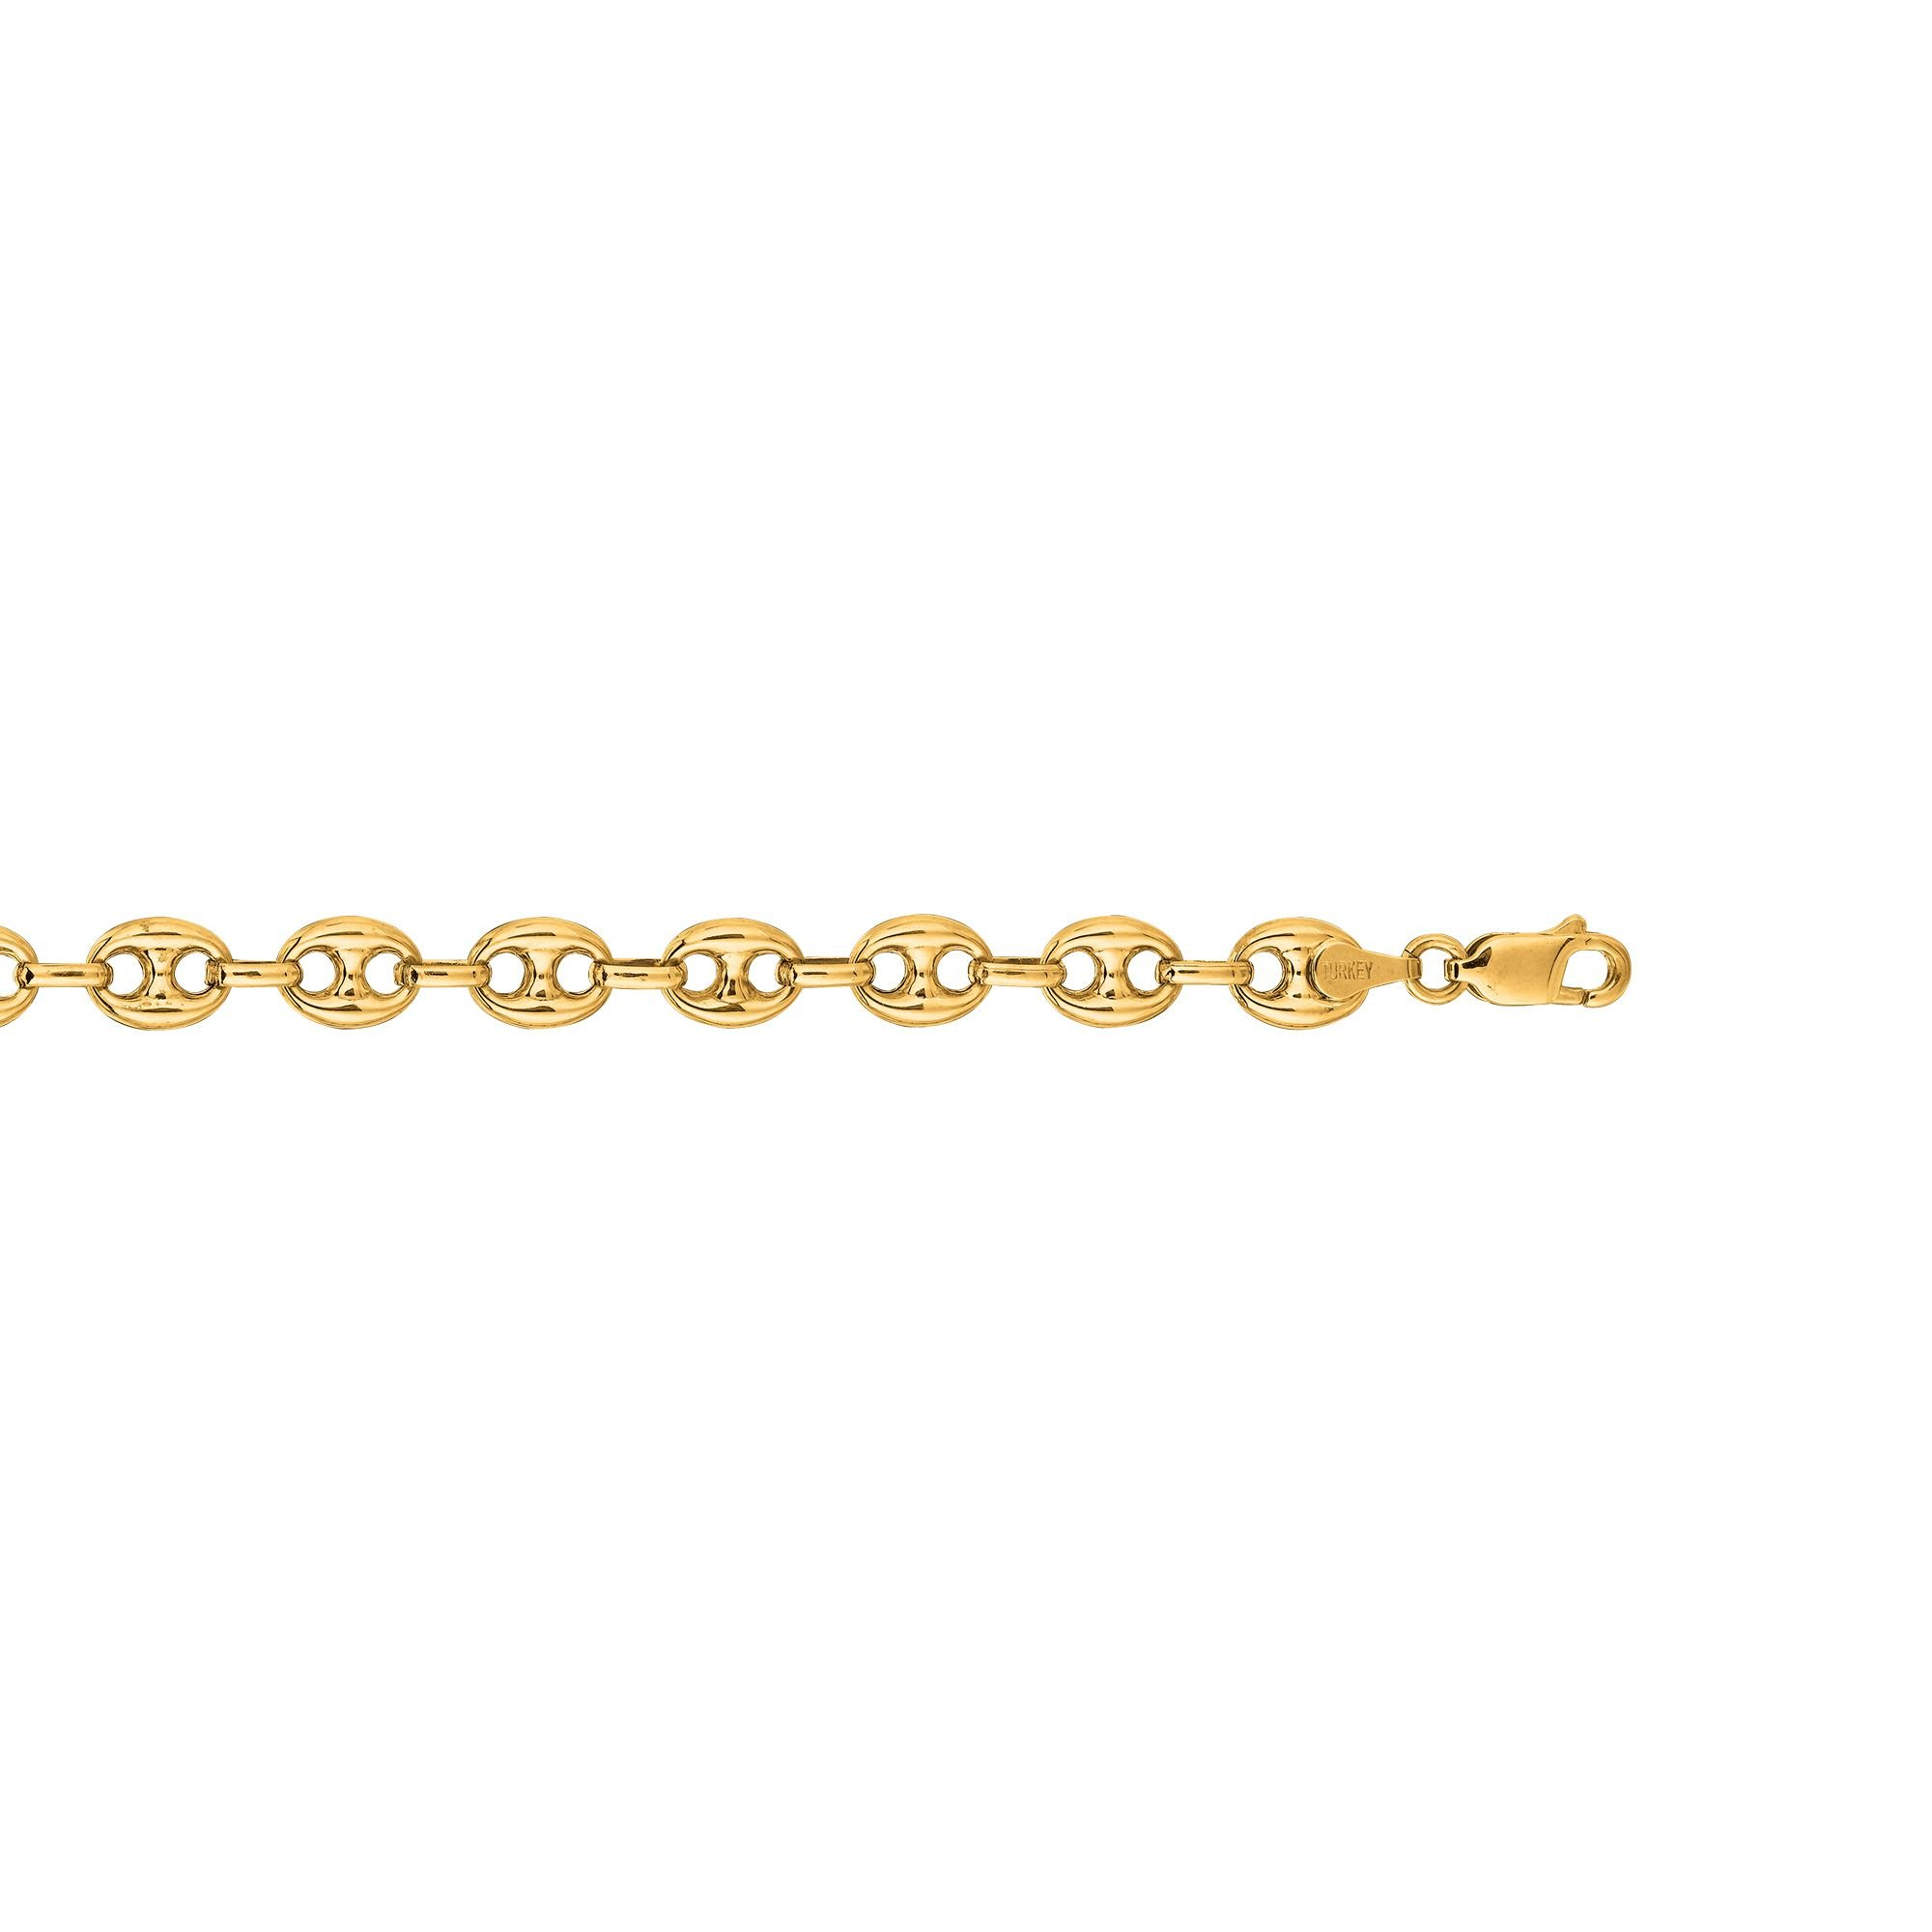 Finejewelers 14 Kt Yellow Gold 8.5 Inch 11mm Puff Mariner Link Bracelet with Lobster Clasp